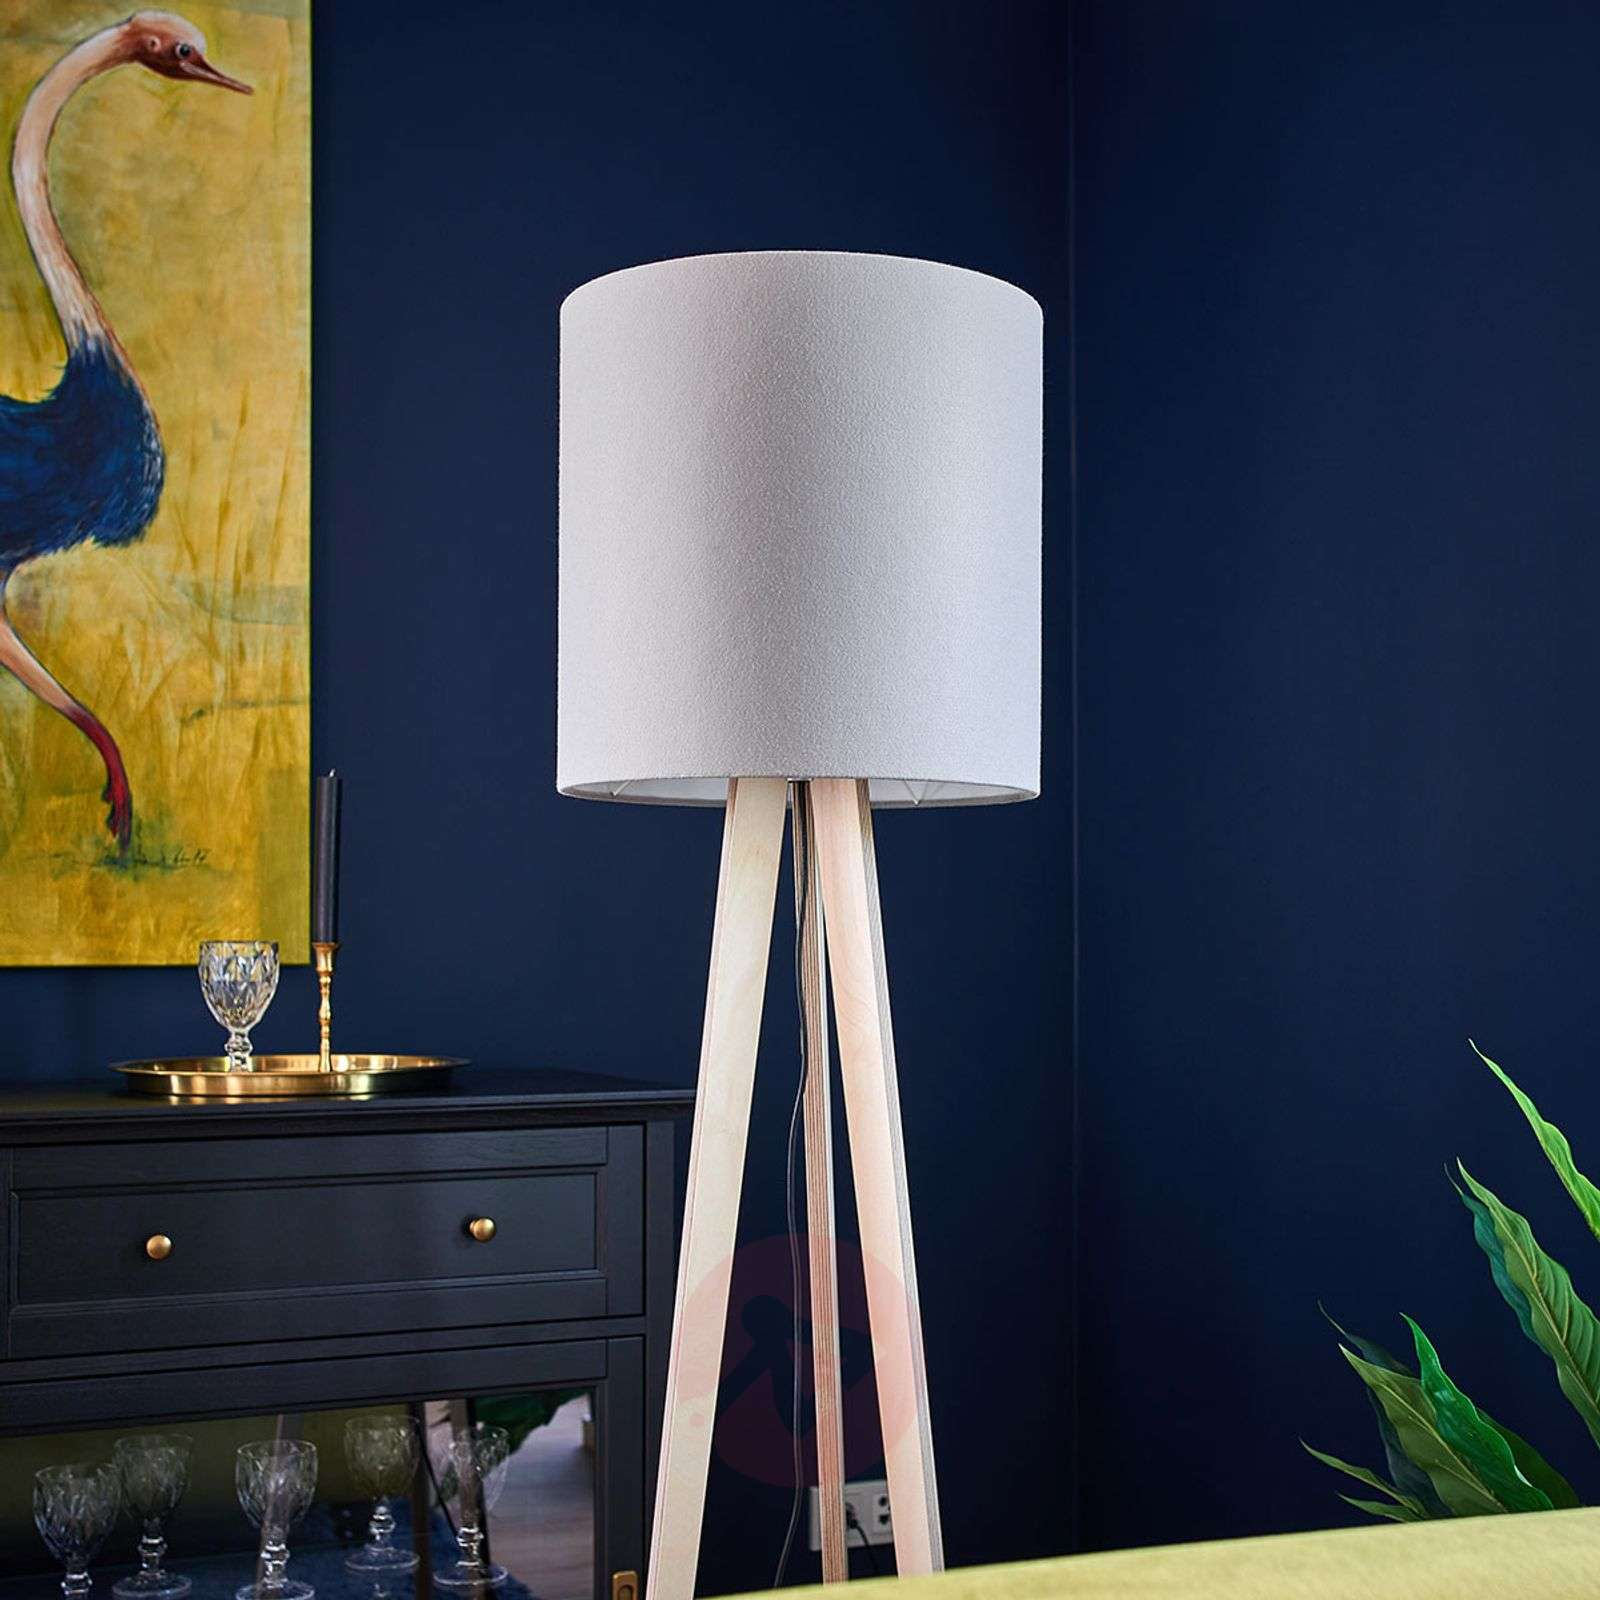 Fabric floor lamp Nida with tripod wooden frame-6722441-01